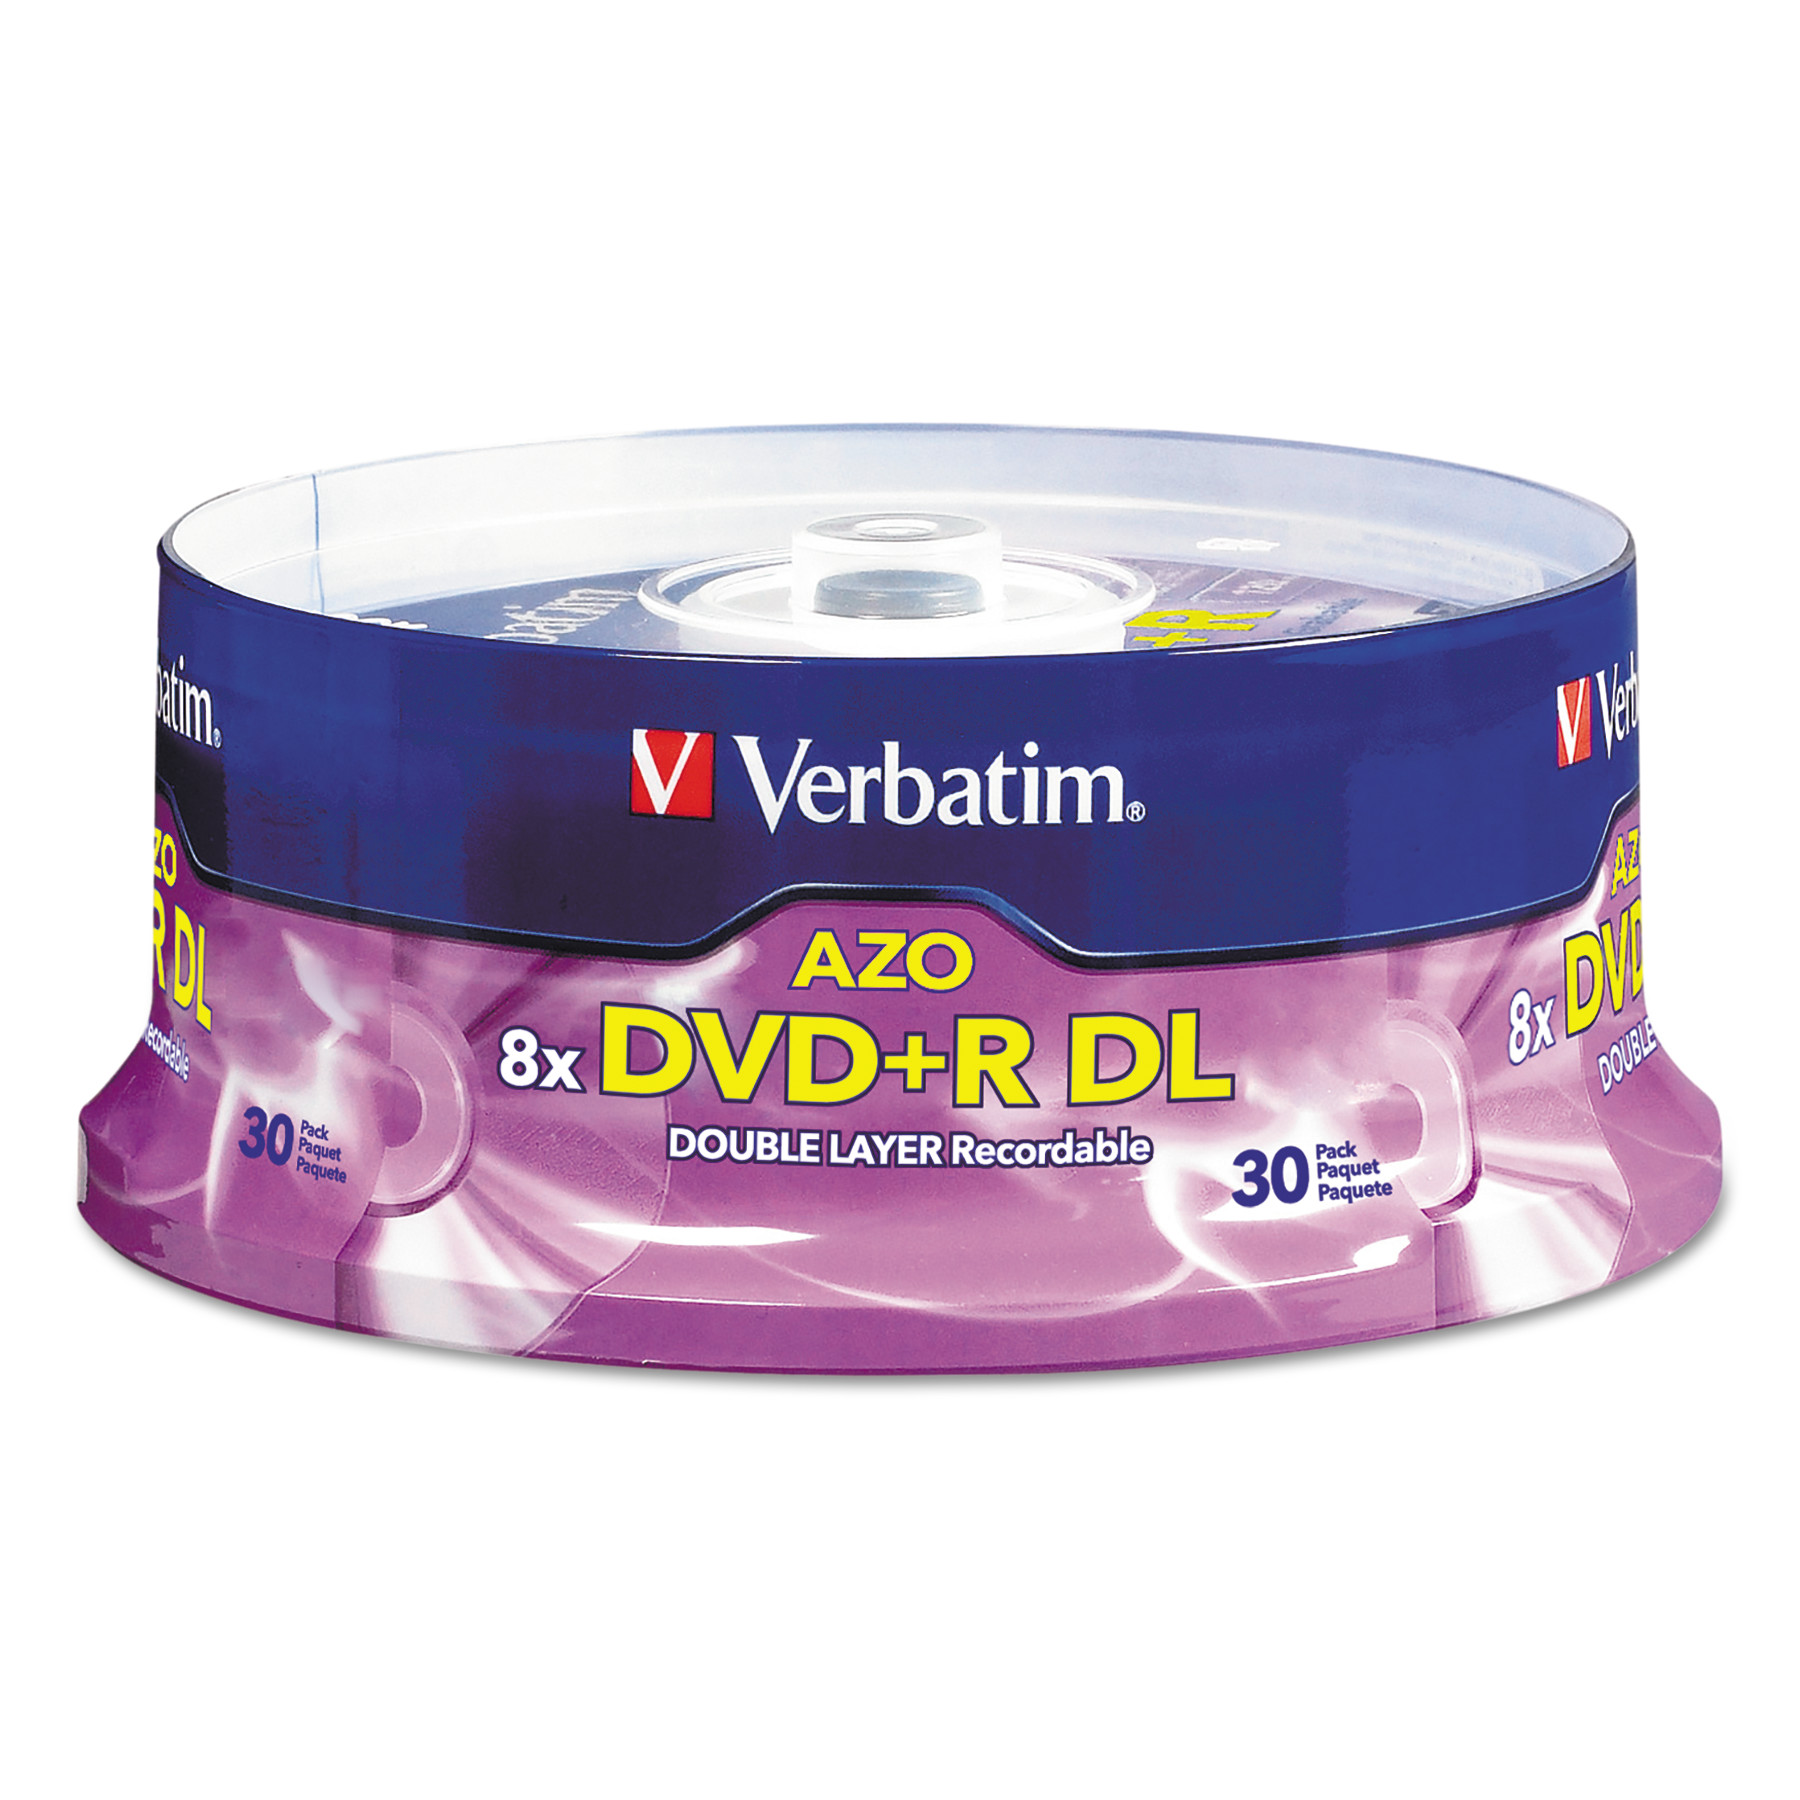 Verbatim Dual-Layer DVD+R Discs, 8.5GB, 8x, Spindle, 30/PK, Silver -VER96542